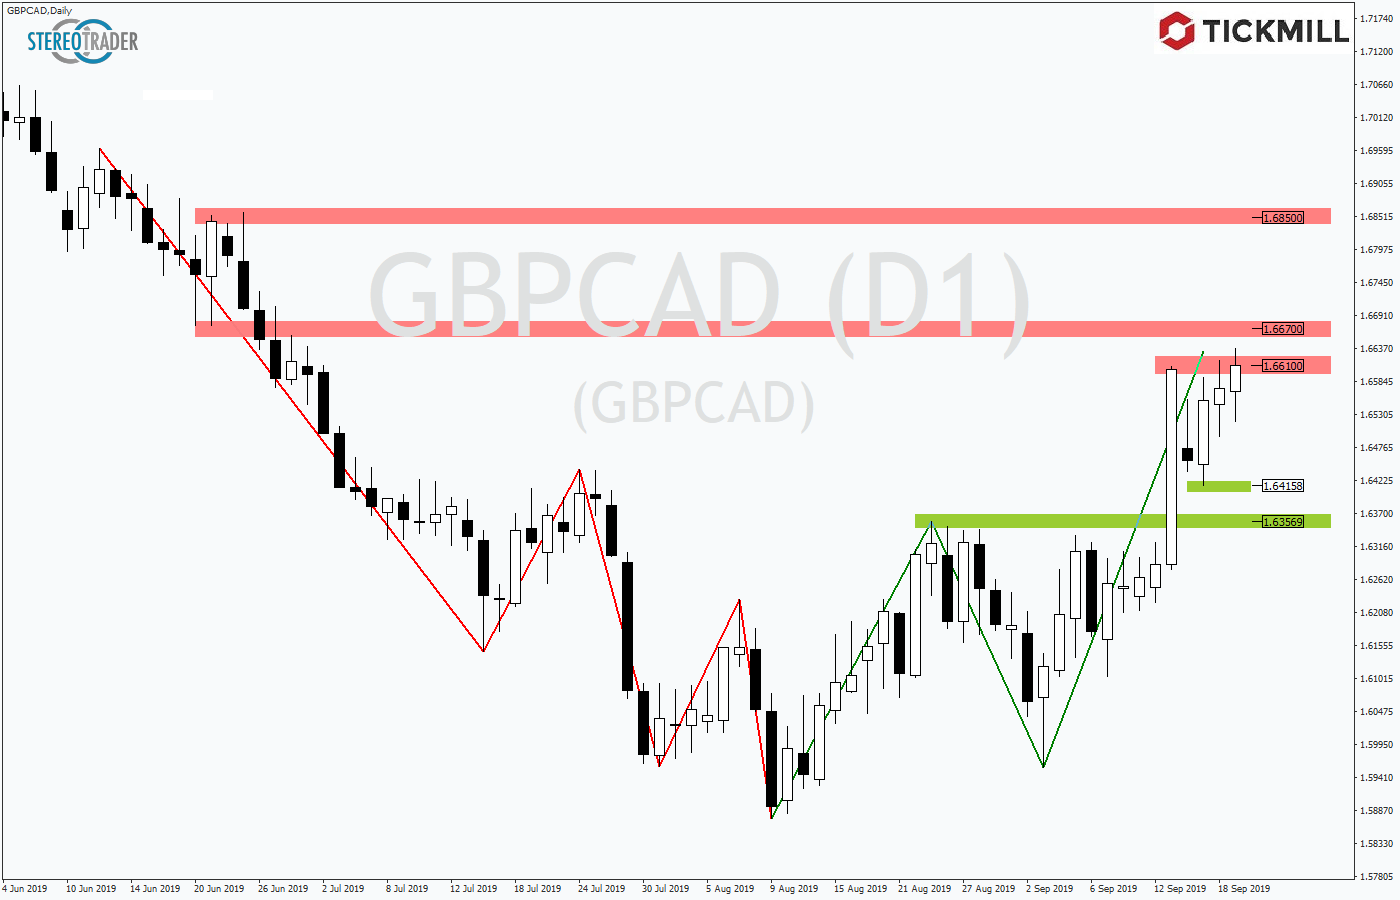 Tickmill-Analyse: GBPCAD im Bullenmodus